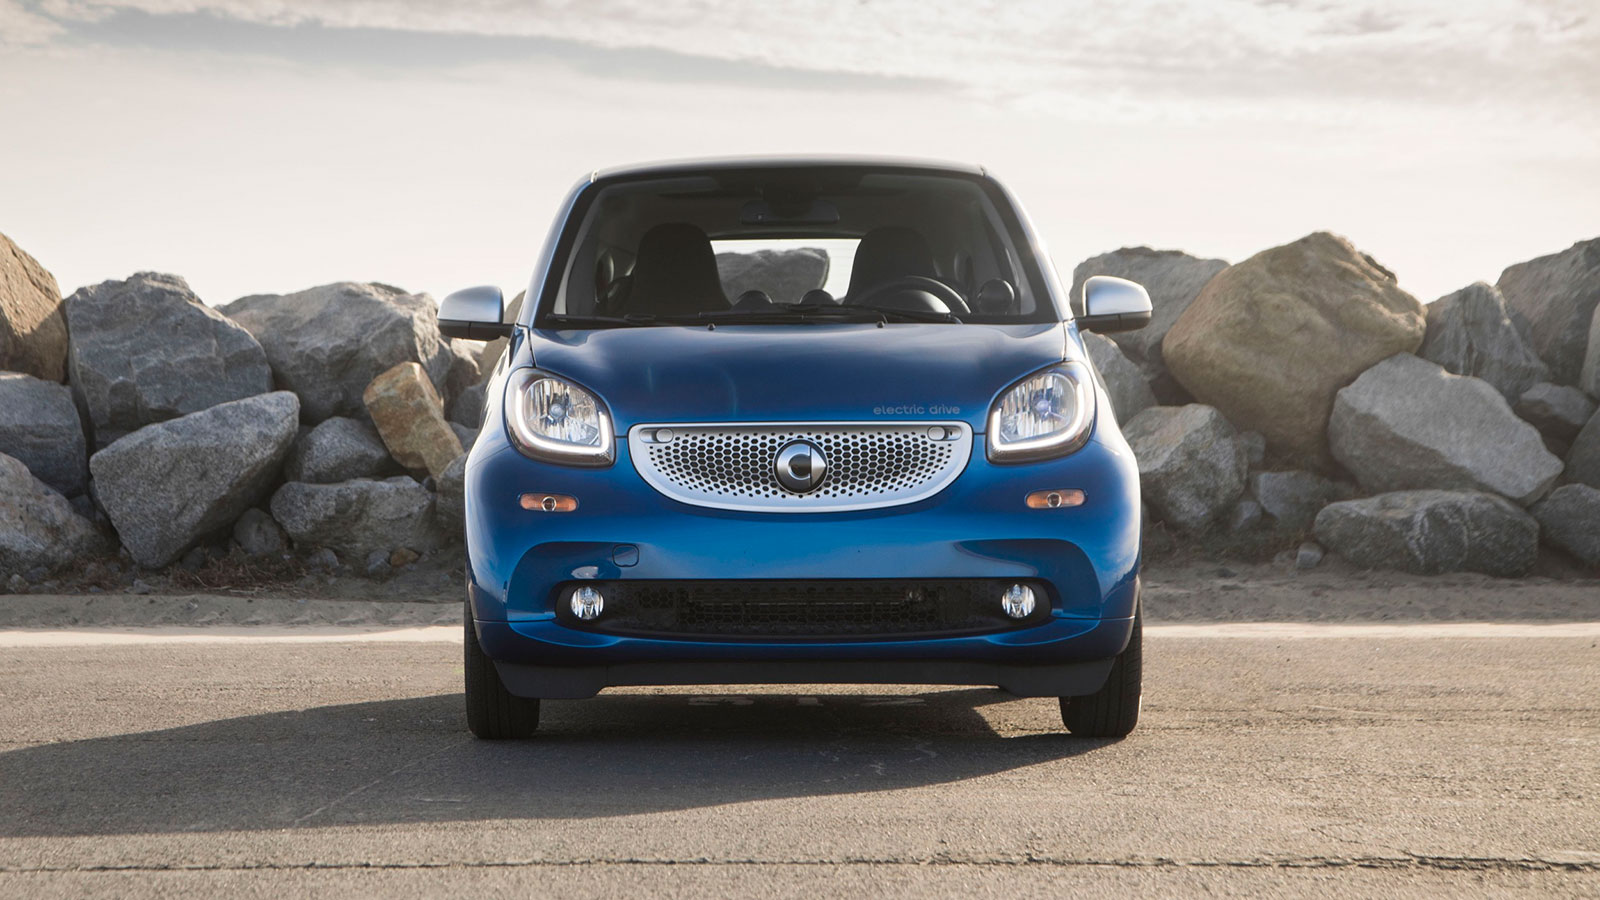 If There S One Viable Use Case For The Smart Fortwo Electric Drive It Might Be Someone Who Lives In Densely Packed Downtown Area But Regularly